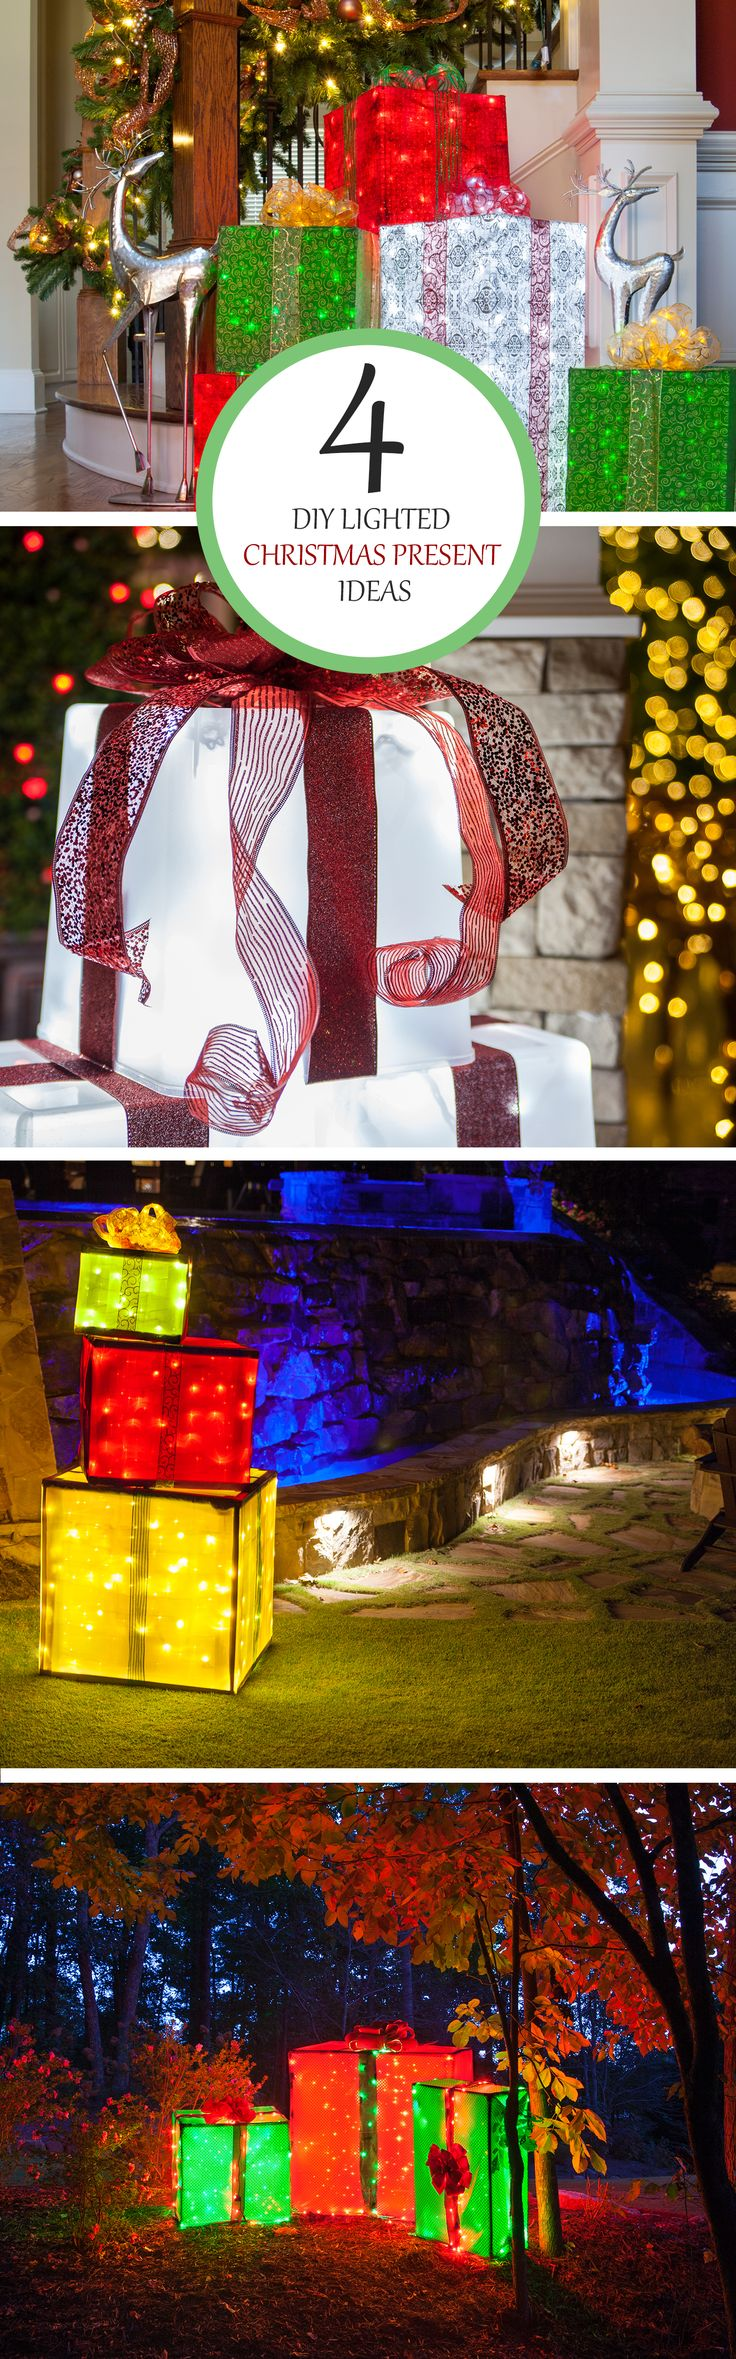 Homemade christmas yard decorations ideas - Create Lighted Gift Boxes To Use As Outdoor Christmas Yard Decorations By Using Basic Materials